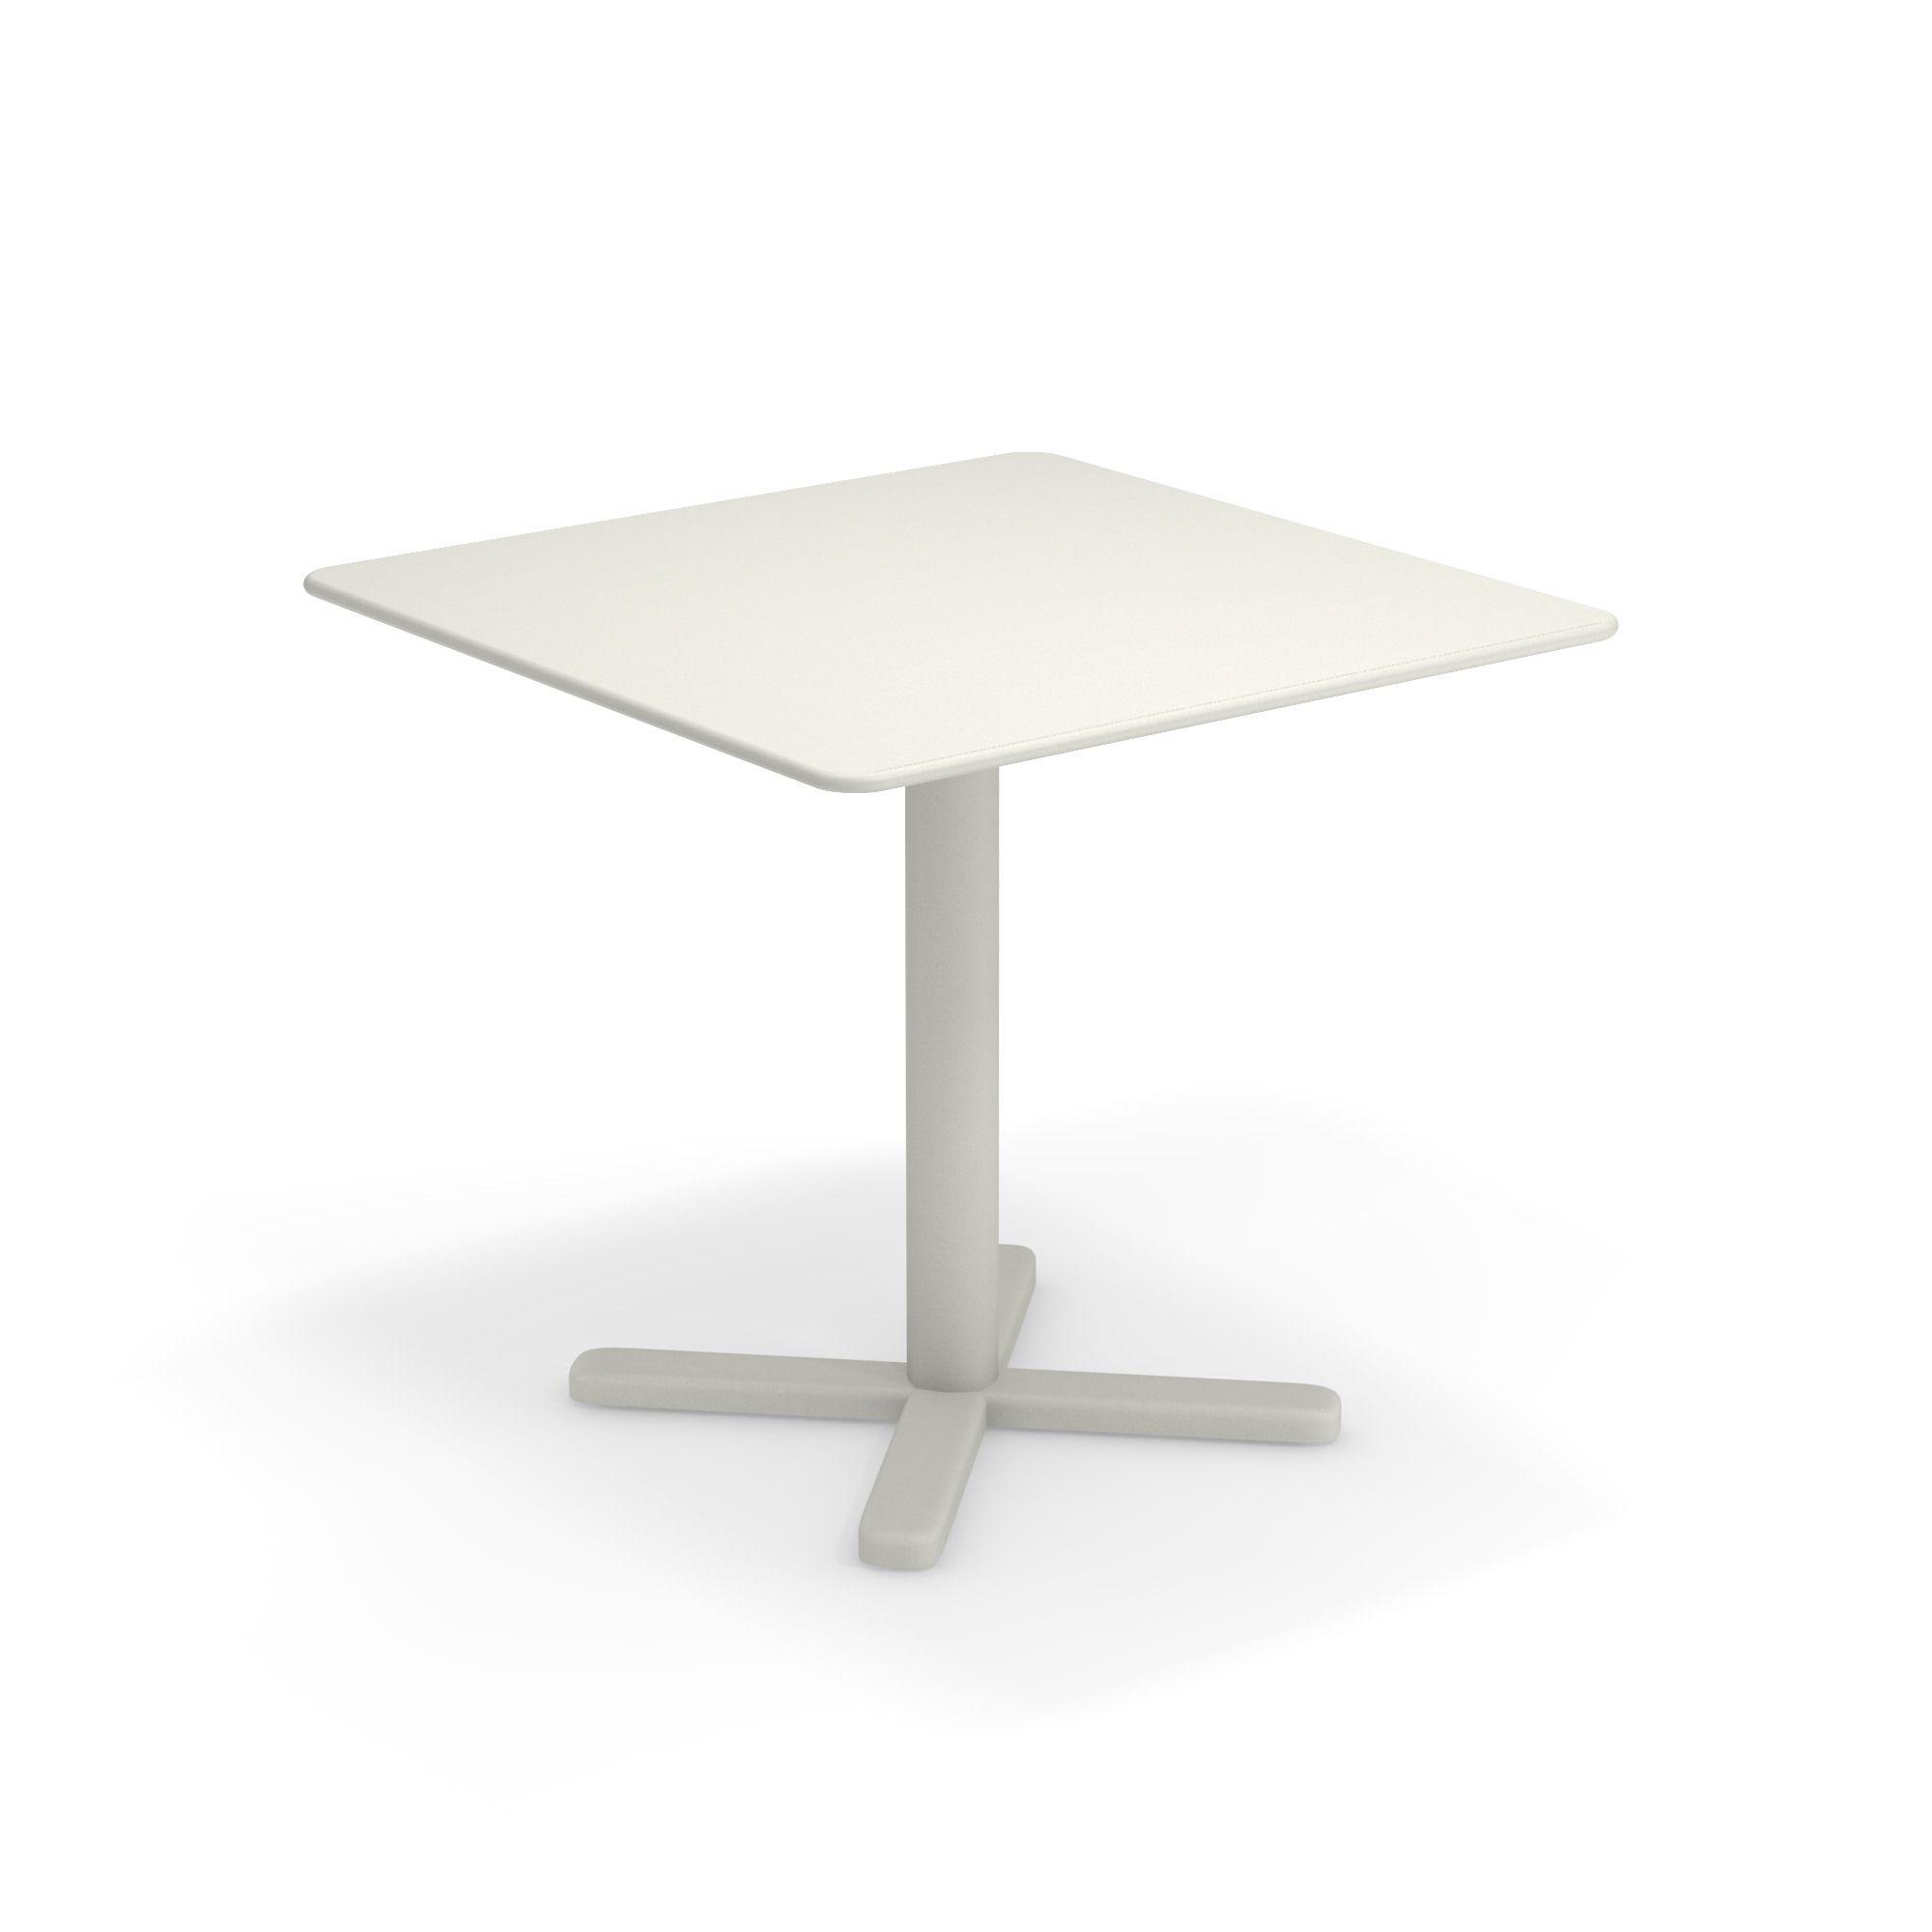 emuamericas, llc 529-23 table, outdoor